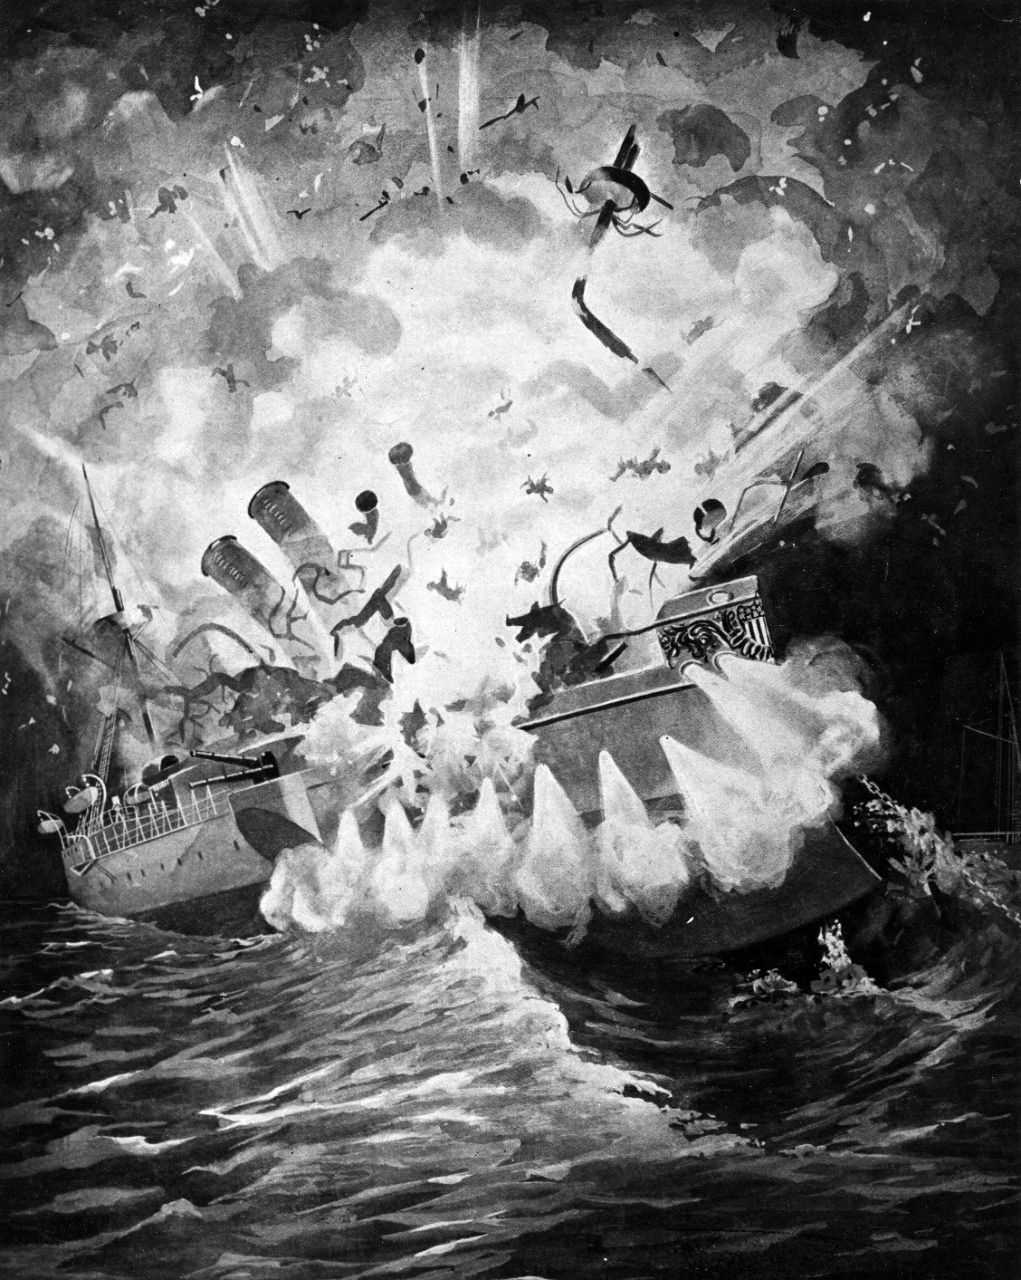 Painting in black and white depicting a ship exploding in the water